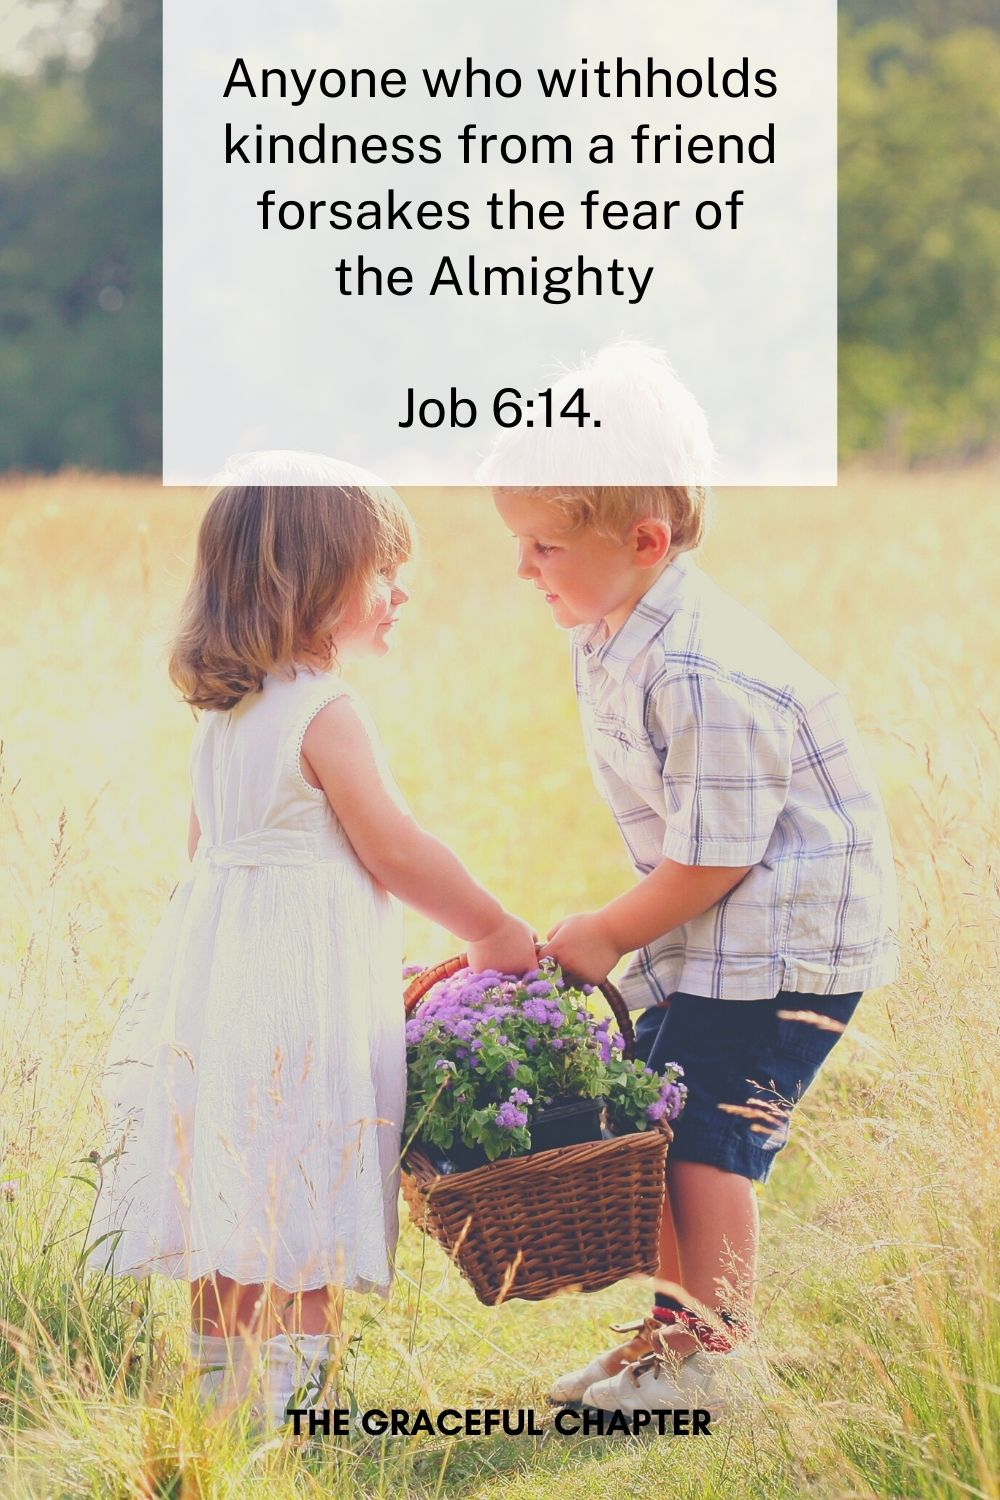 Anyone who withholds kindness from a friend forsakes the fear of the Almighty  Job 6:14.